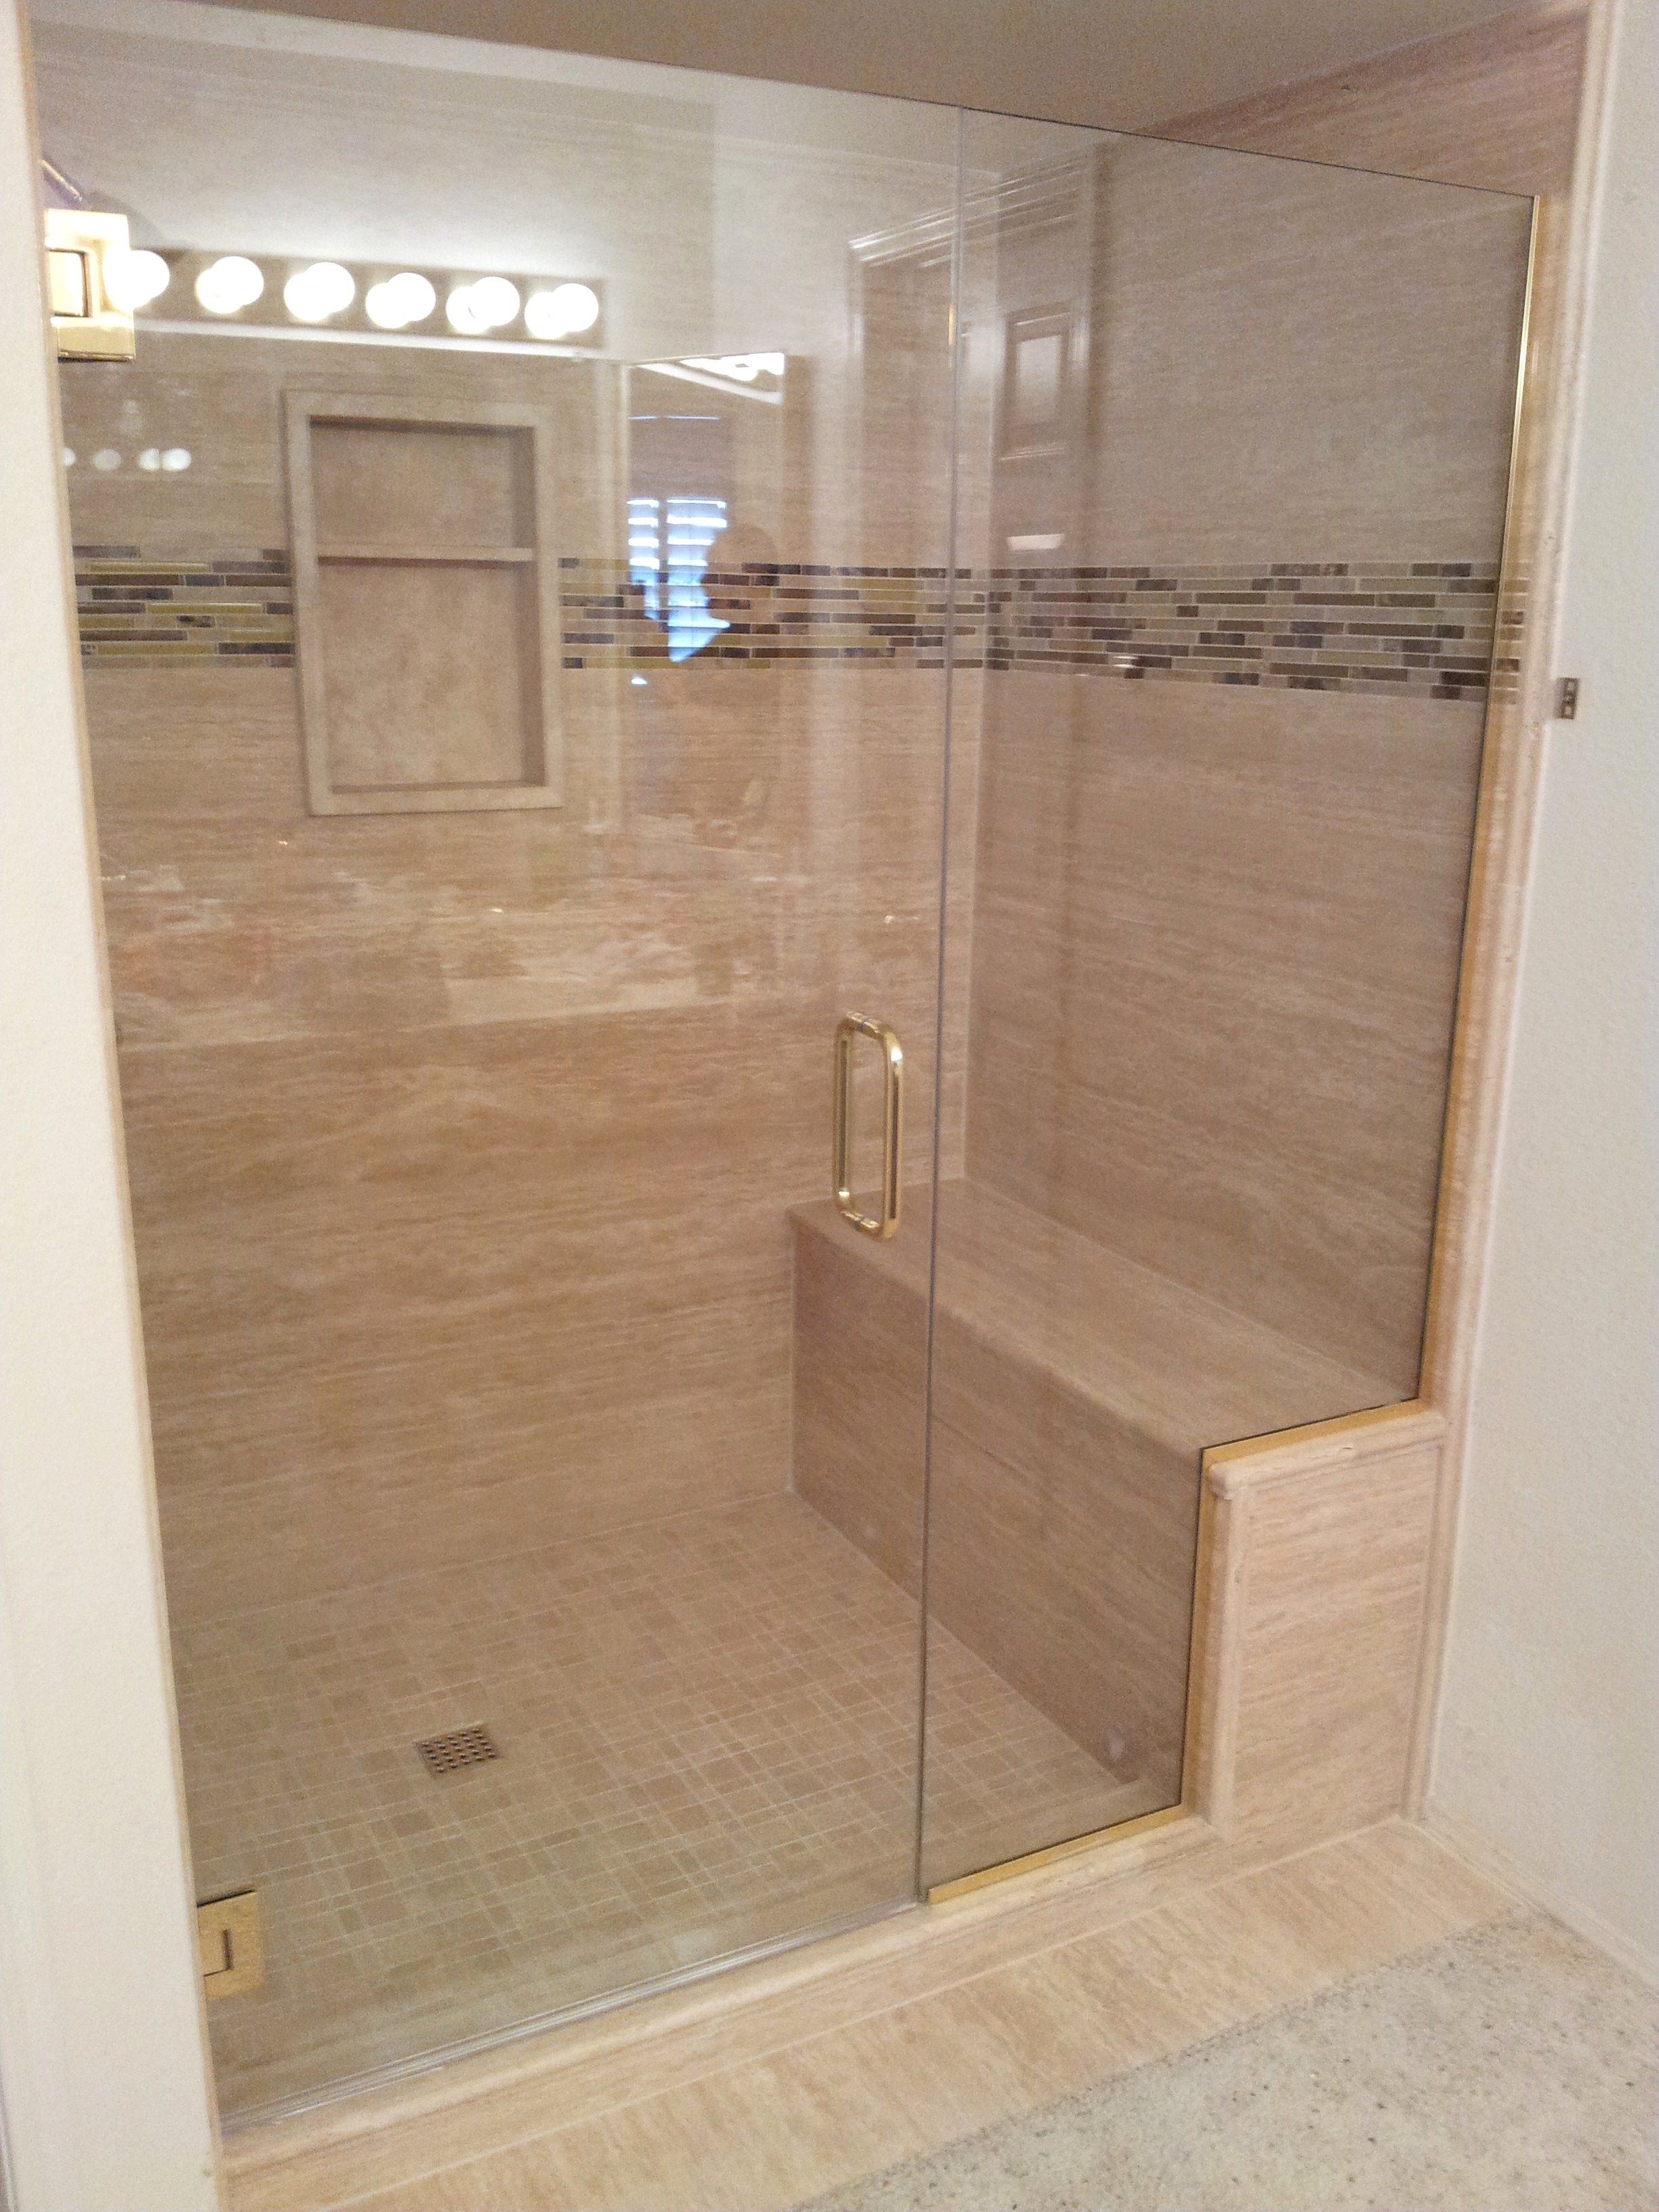 Walk in shower ideas Stone paneling in the shower surround